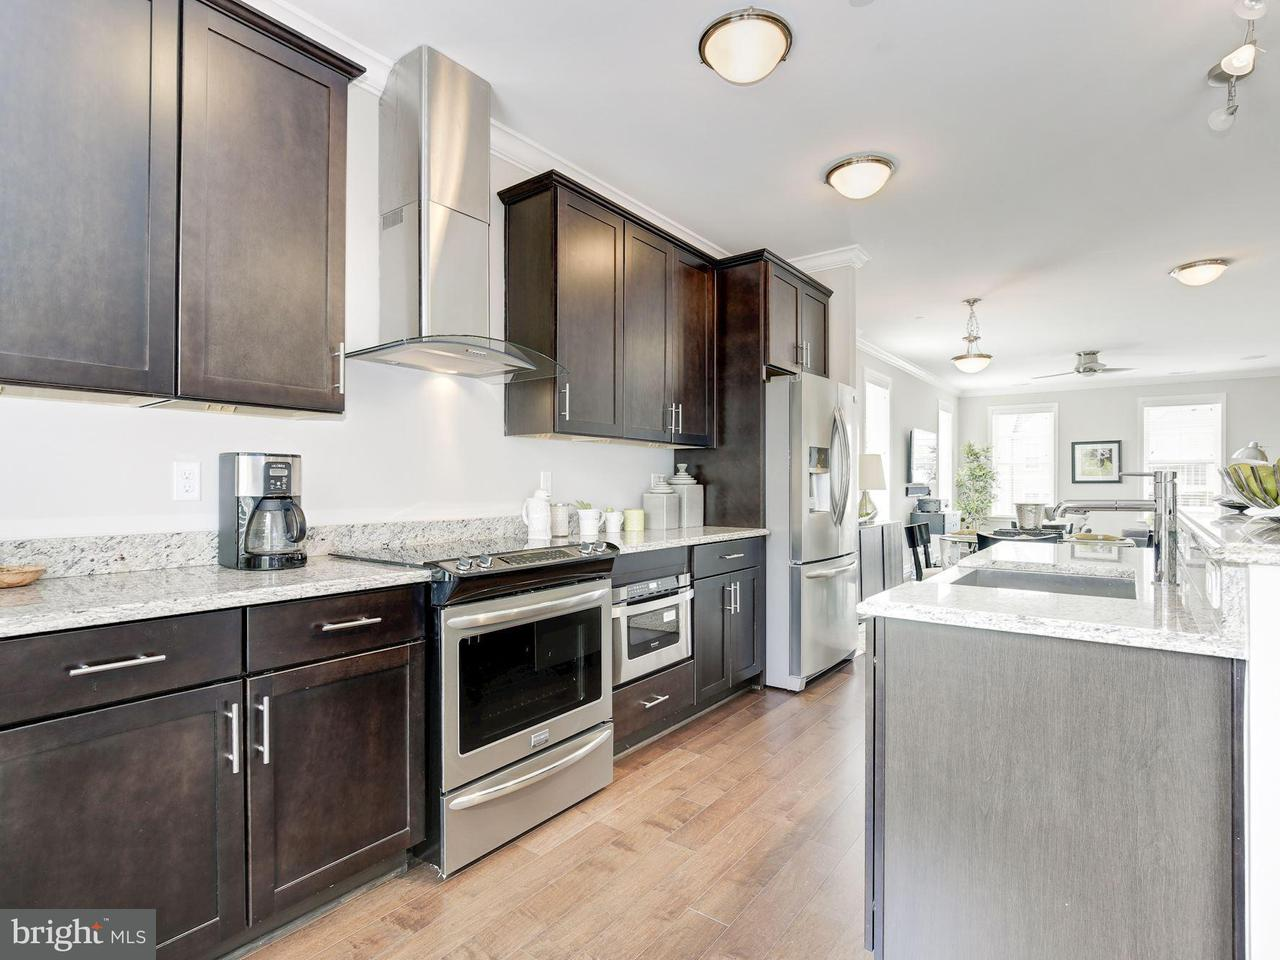 Single Family for Sale at 424 Woodcrest Dr SE #b Washington, District Of Columbia 20032 United States